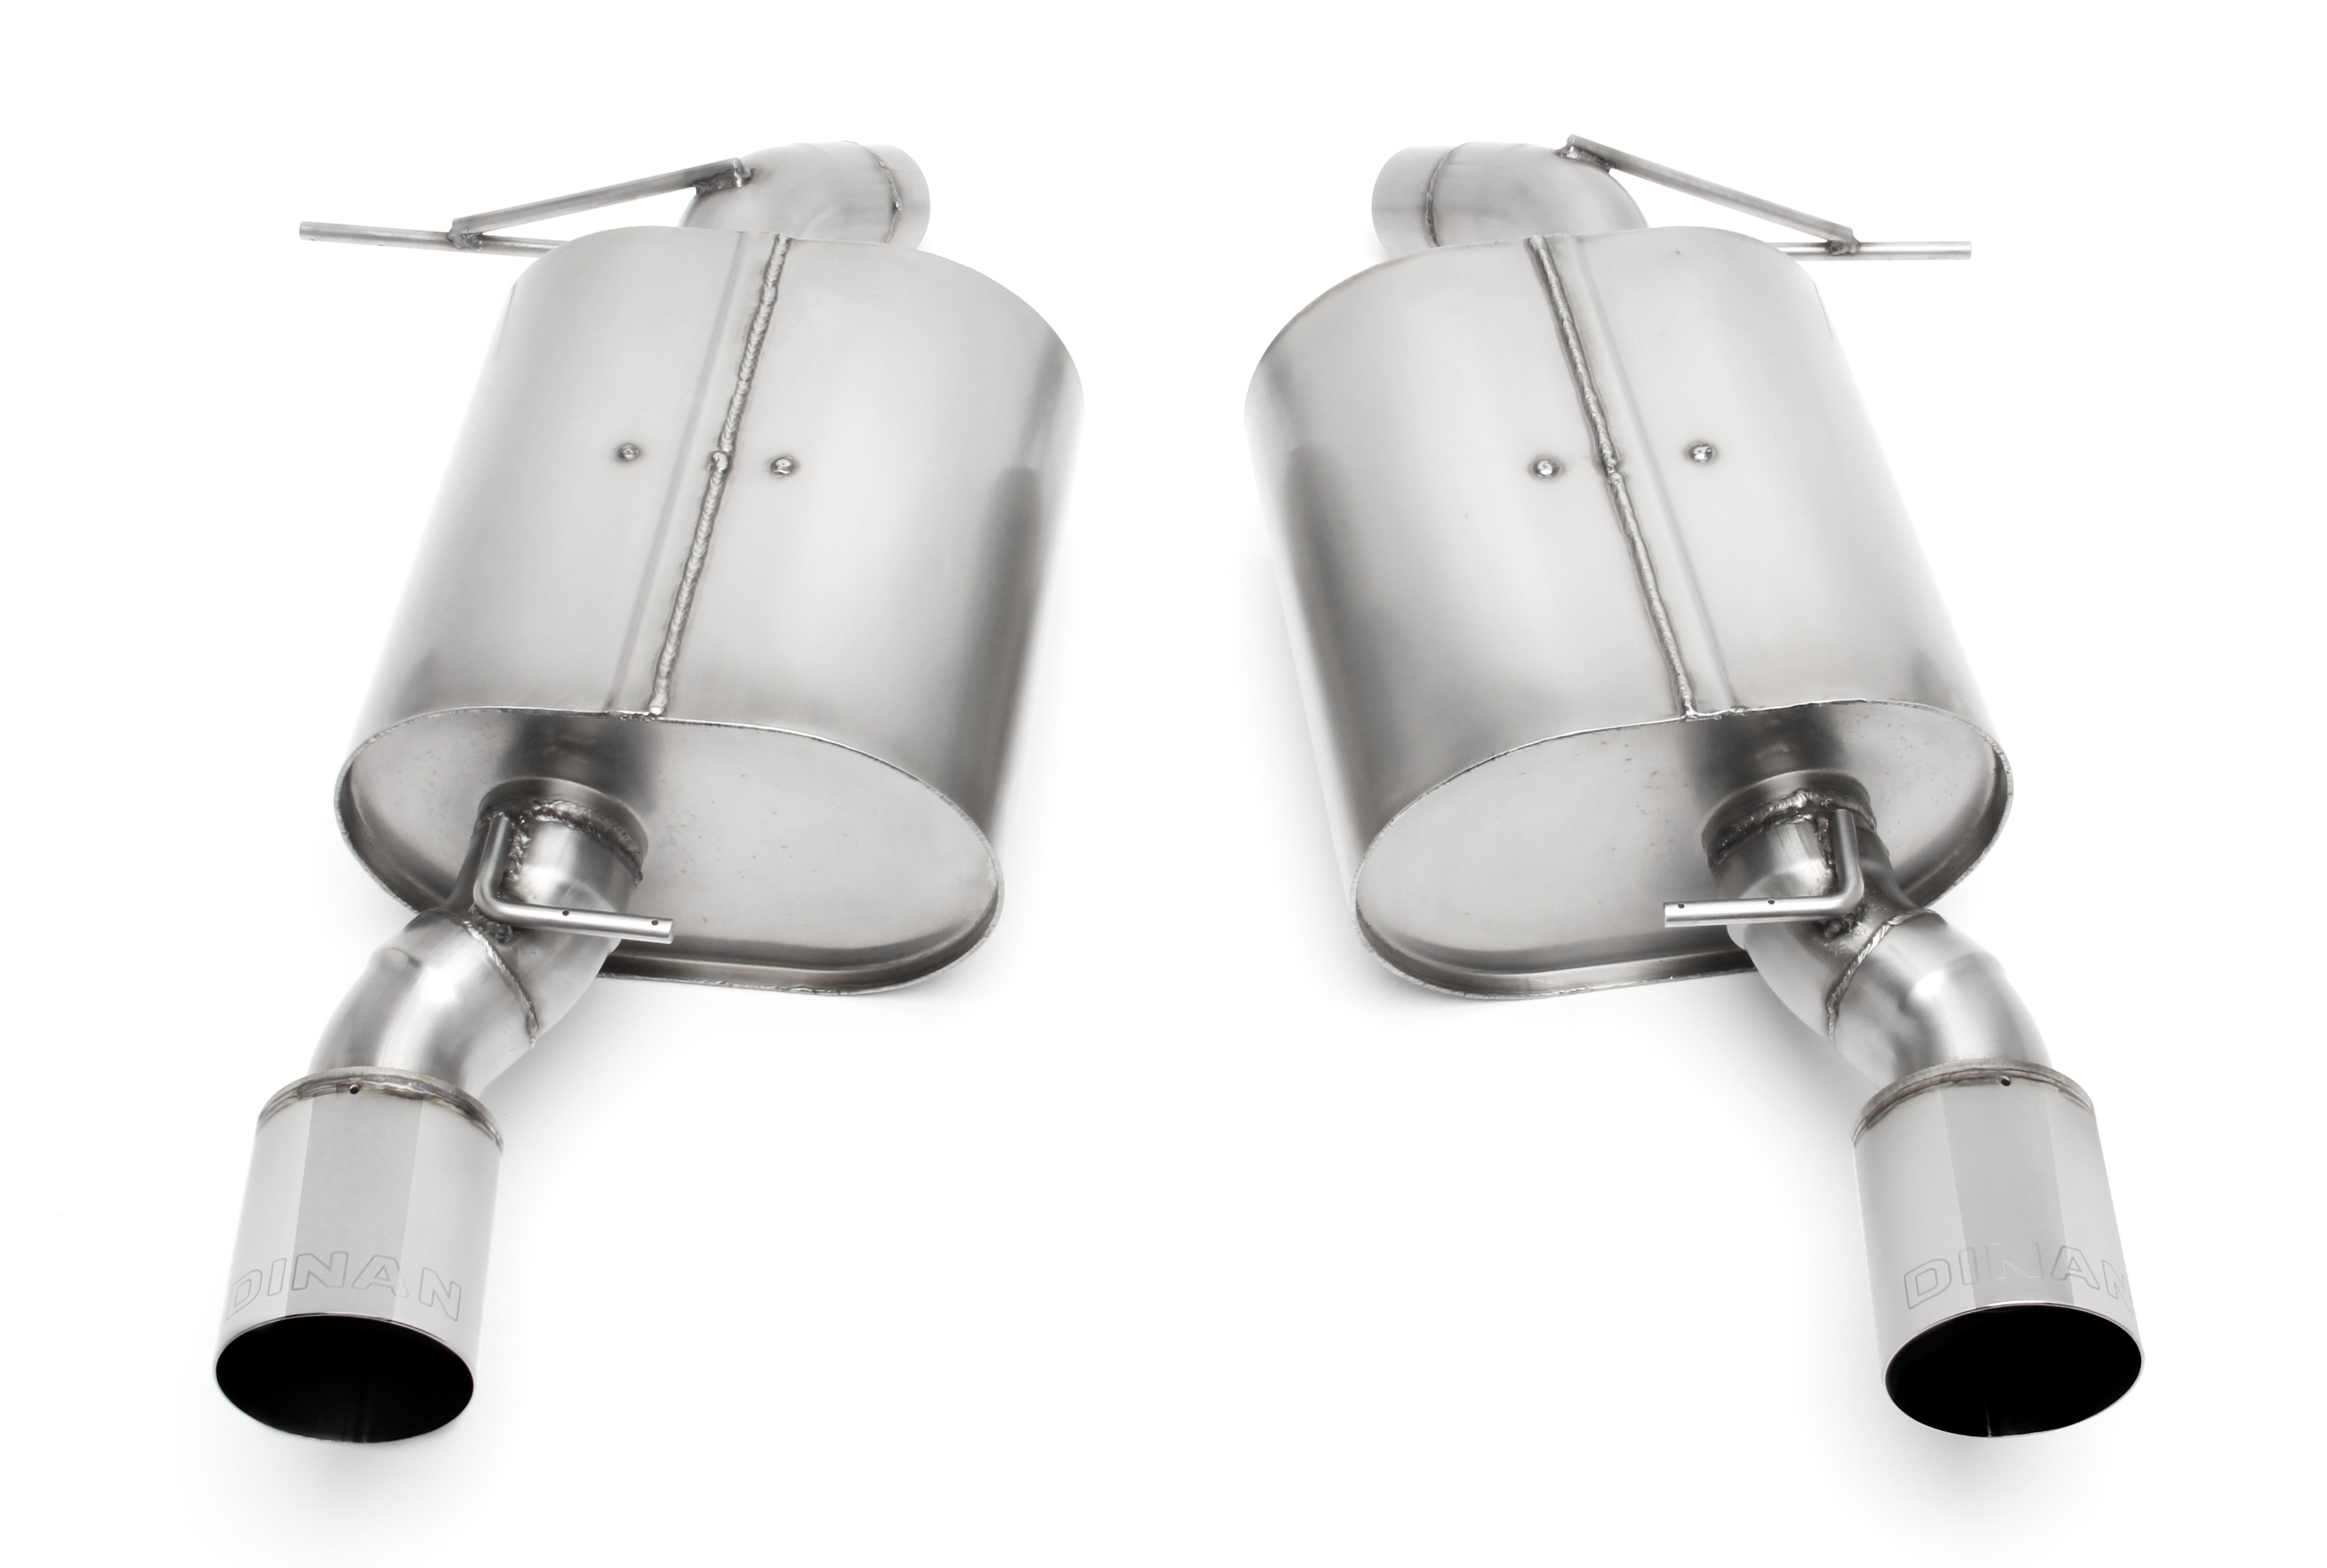 D660-0012 Dinan Performance Exhaust System Kit 304 Stainless Steel